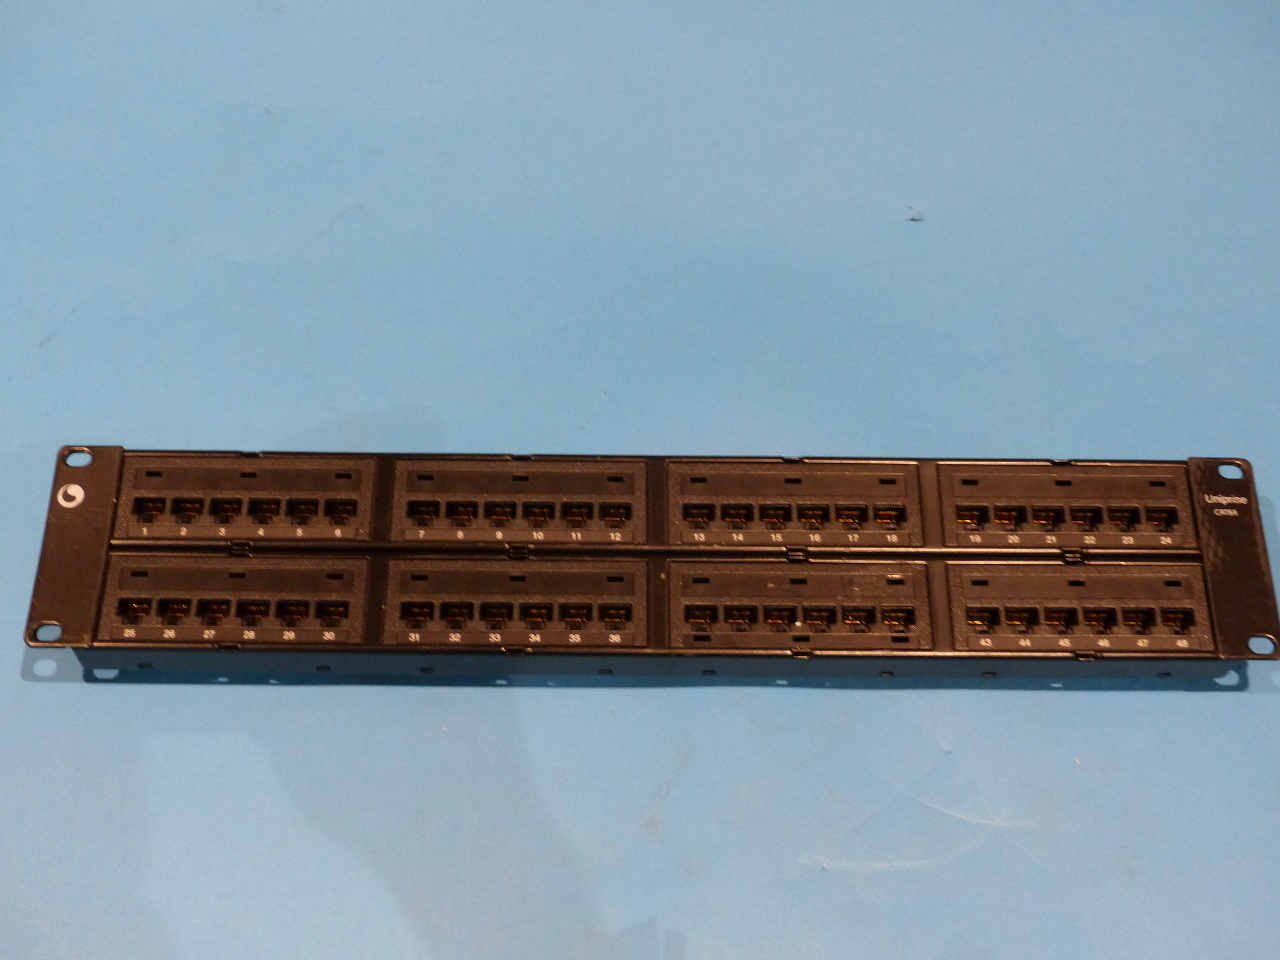 patch panel systimax cat 6a